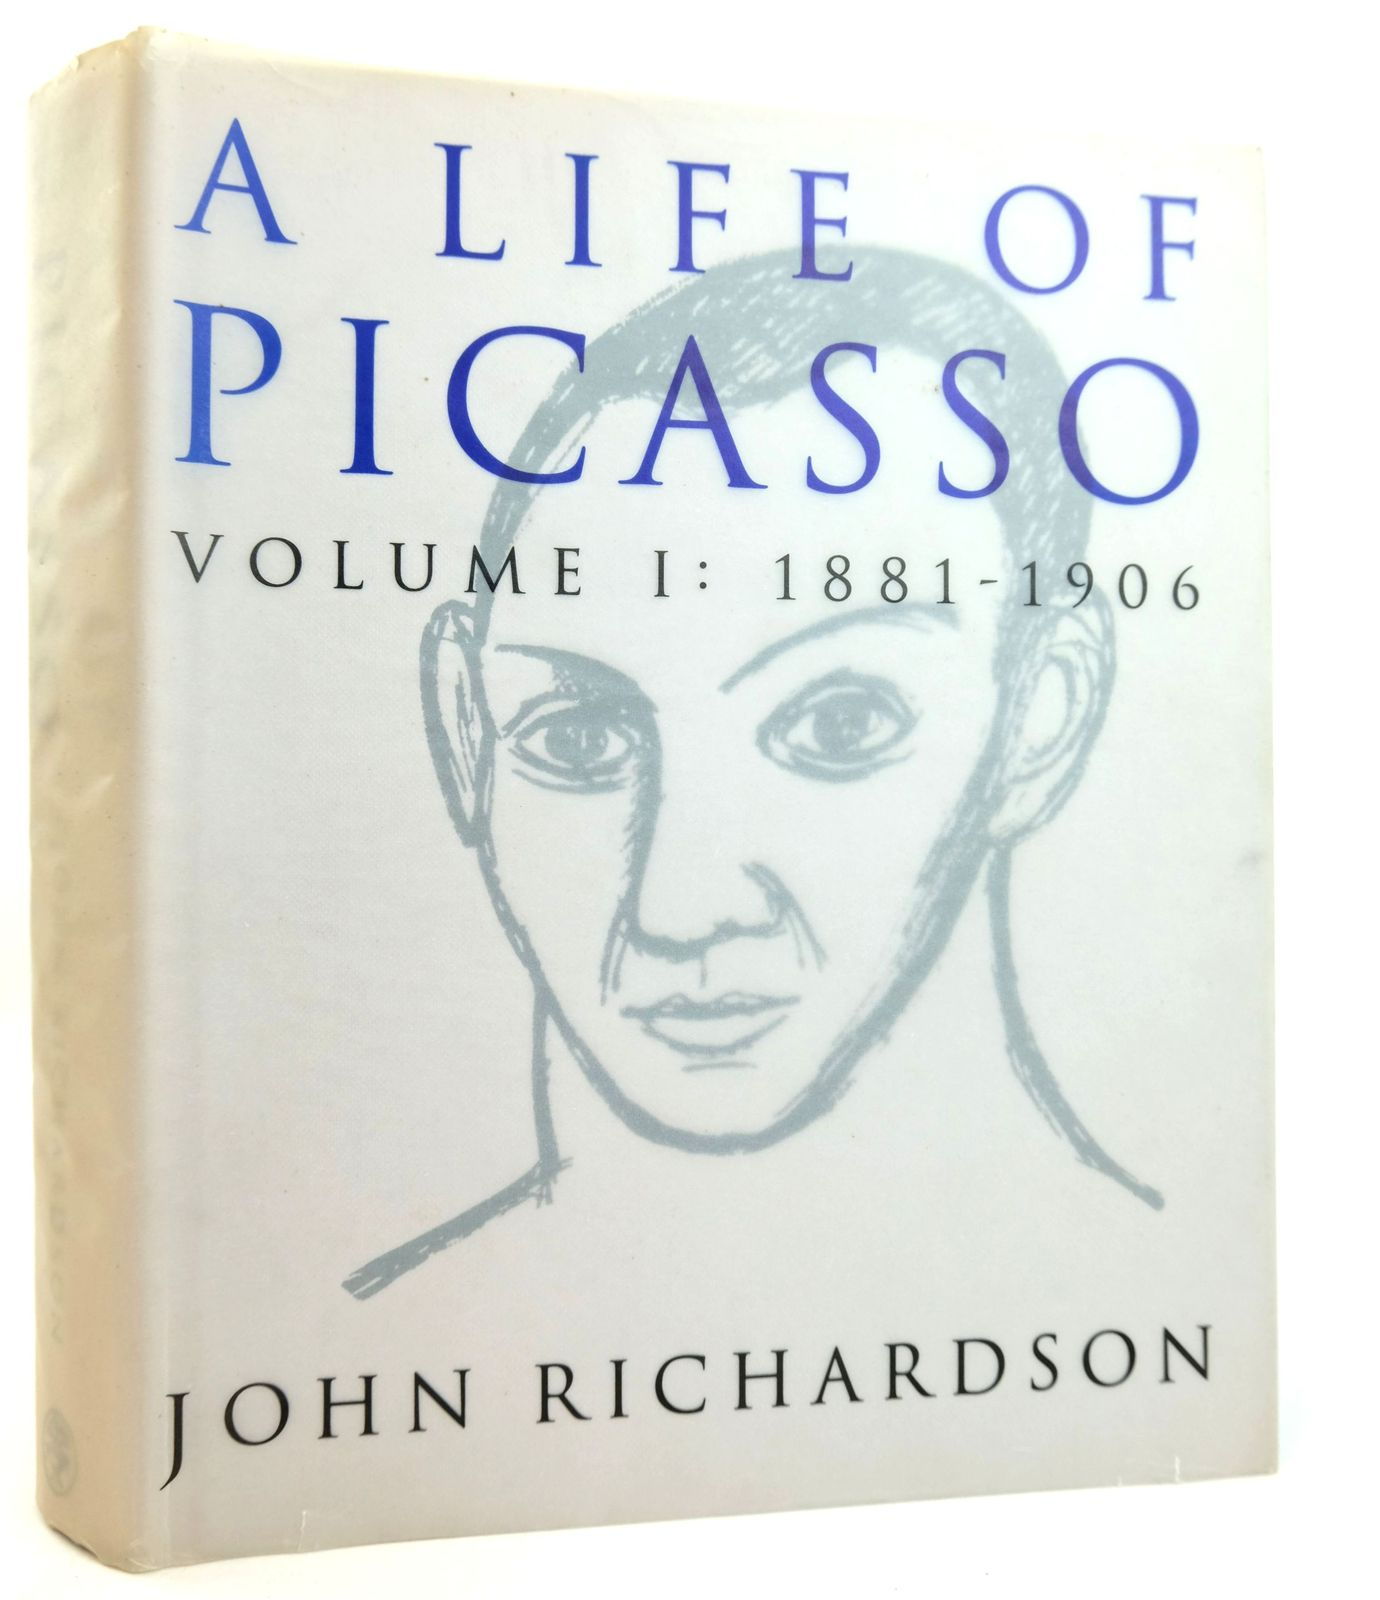 Photo of A LIFE OF PICASSO VOLUME I: 1881-1906 written by Richardson, John illustrated by Picasso, Pablo et al., published by Jonathan Cape (STOCK CODE: 1818949)  for sale by Stella & Rose's Books